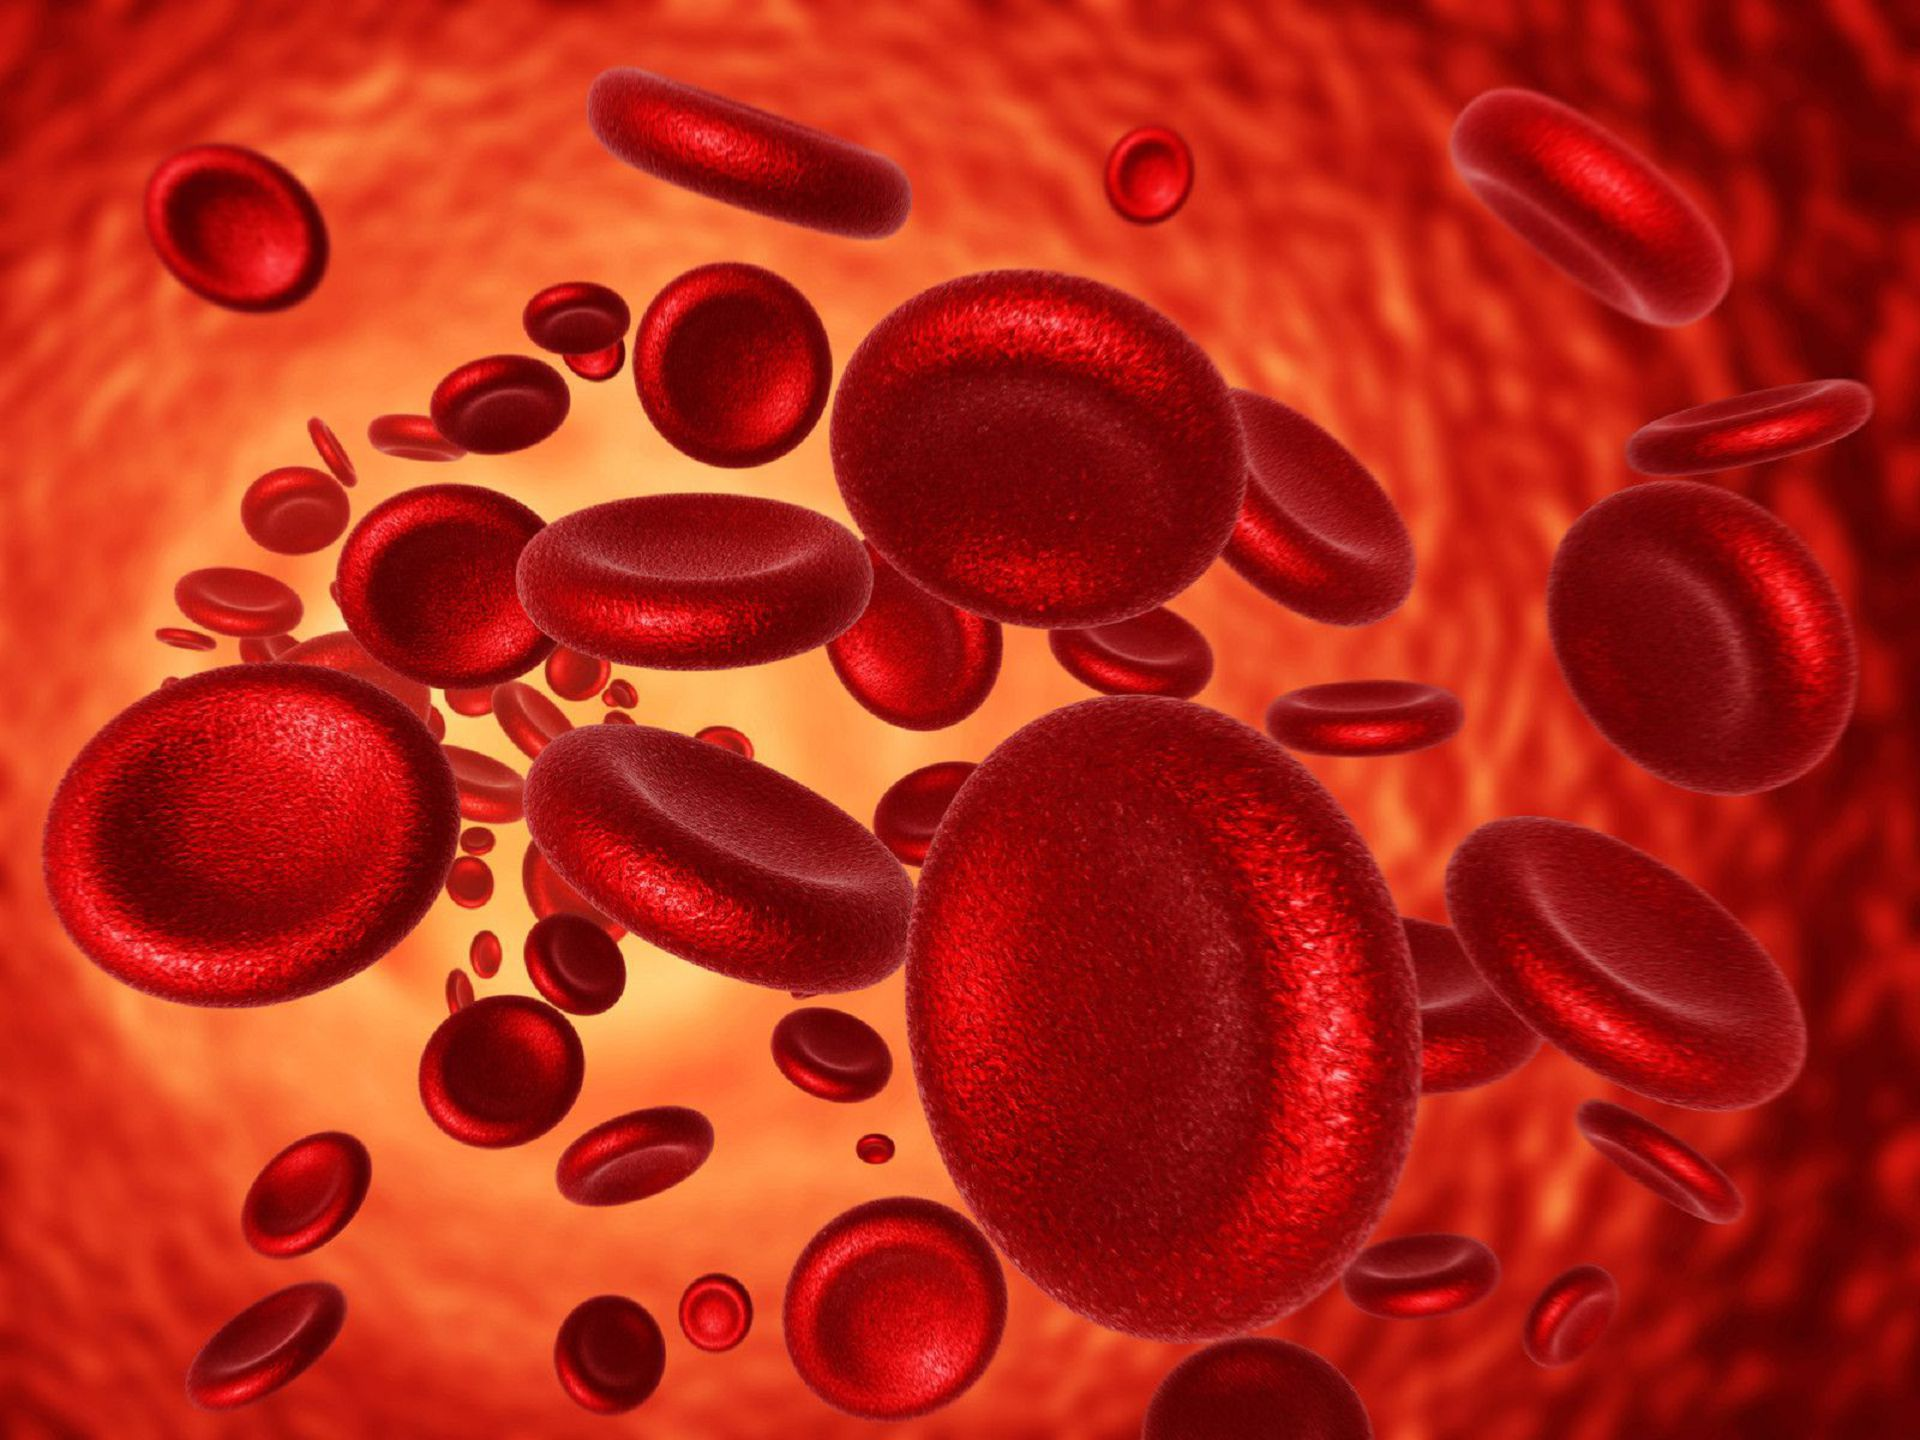 Blood Cells Widescreen